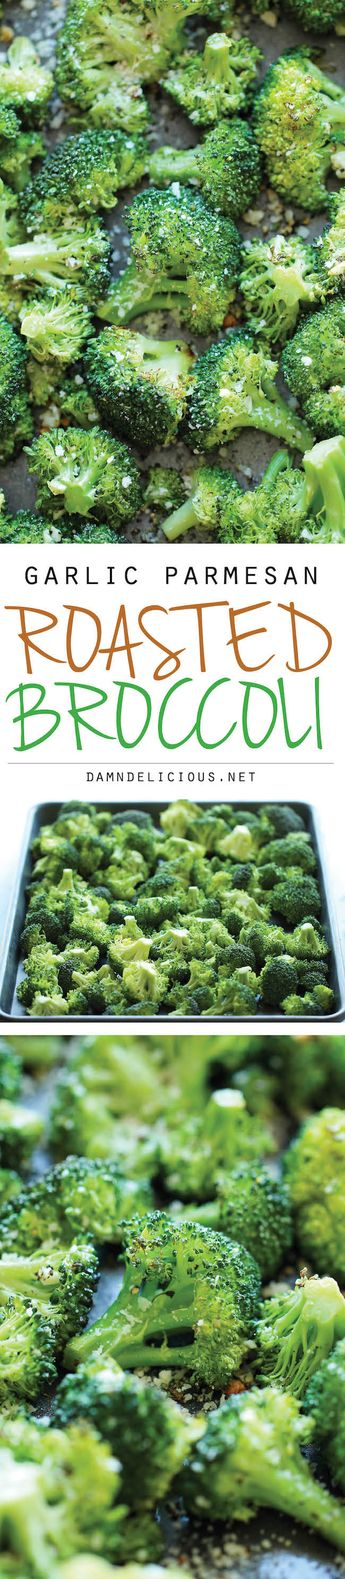 Garlic Parmesan Roasted Broccoli - Good health isn't complicated, you just need to give your body the right nutritional tools and it will take care of itself - Make a lifestyle change today and start feeling and looking better with http://saksa.sevenpoint2.com/health-made-simple.html?country=cz&language=en